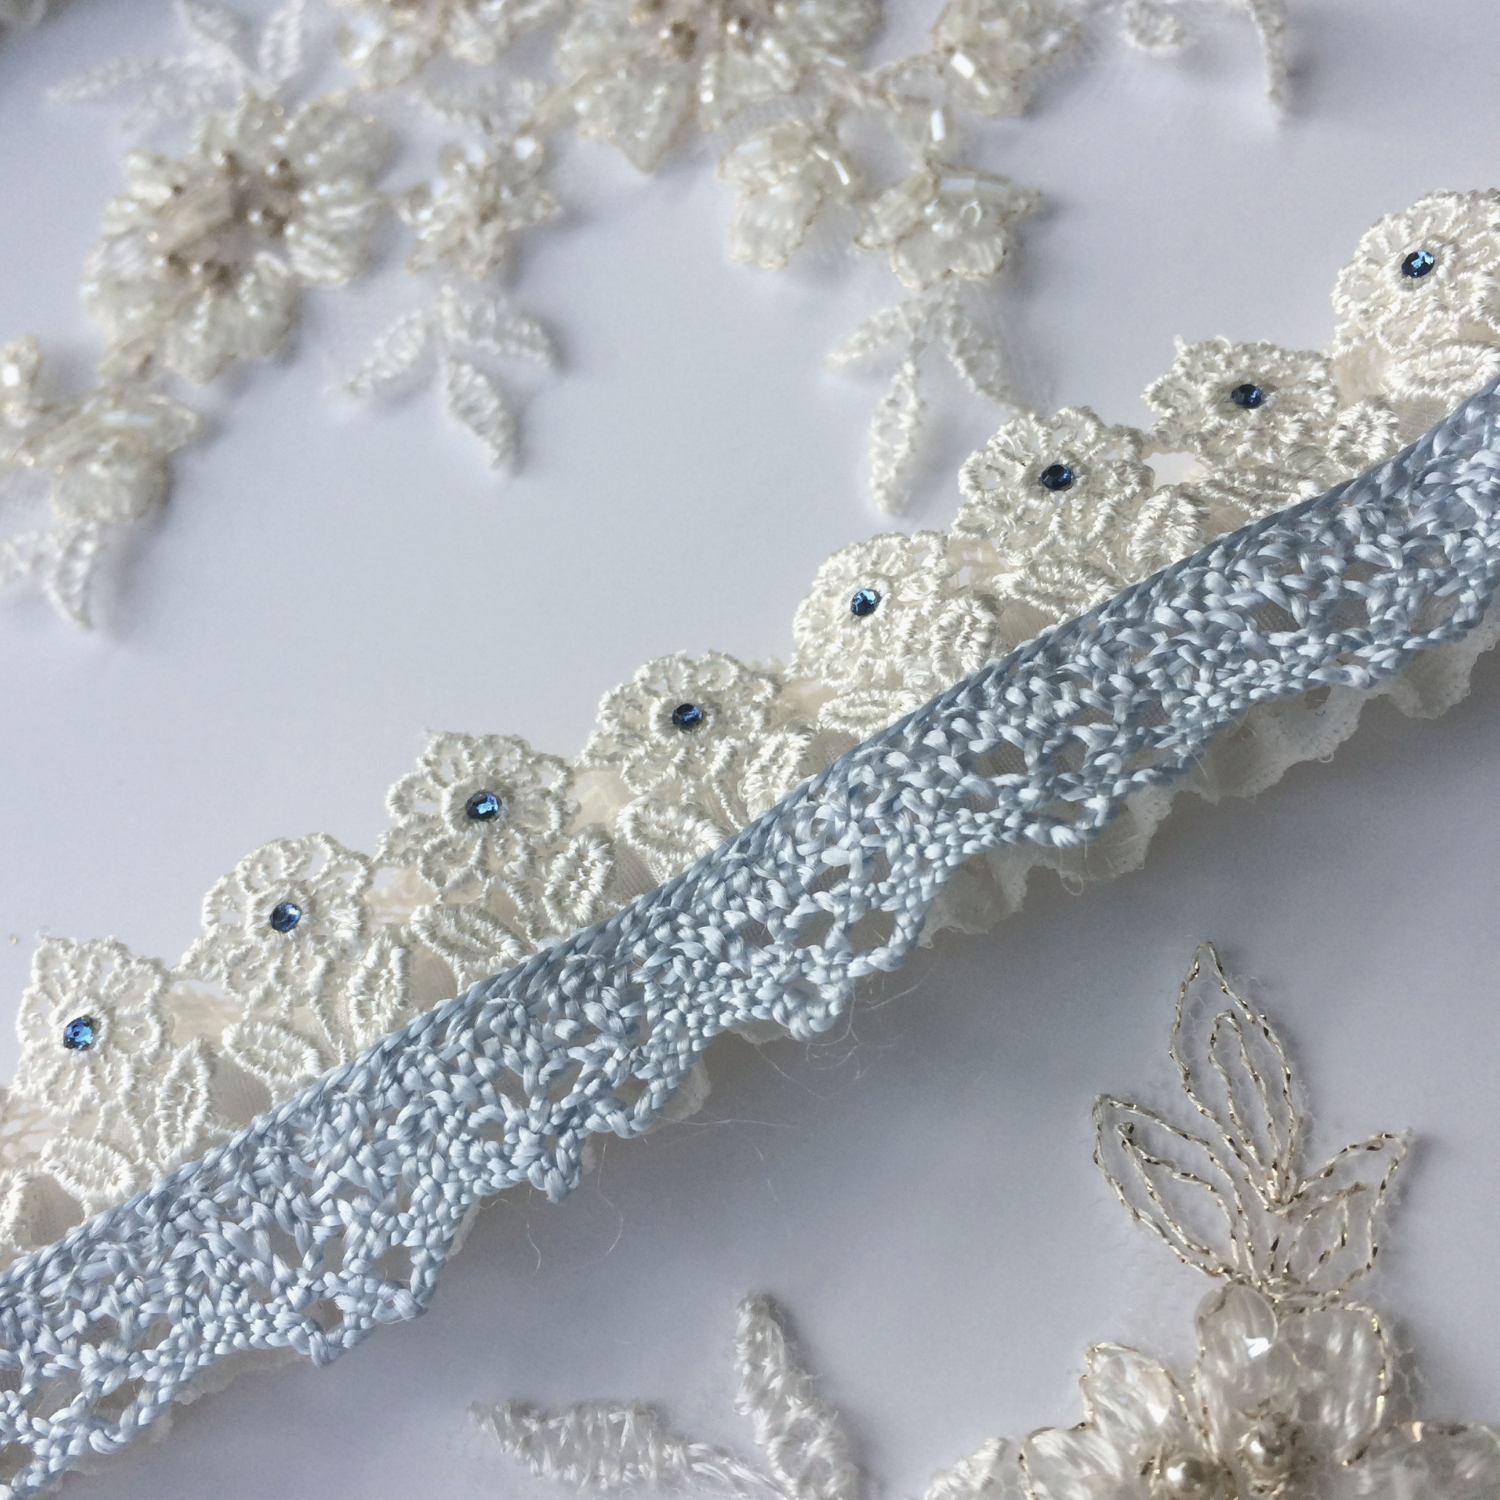 Flat lace wedding garter Pretty maids all in a row